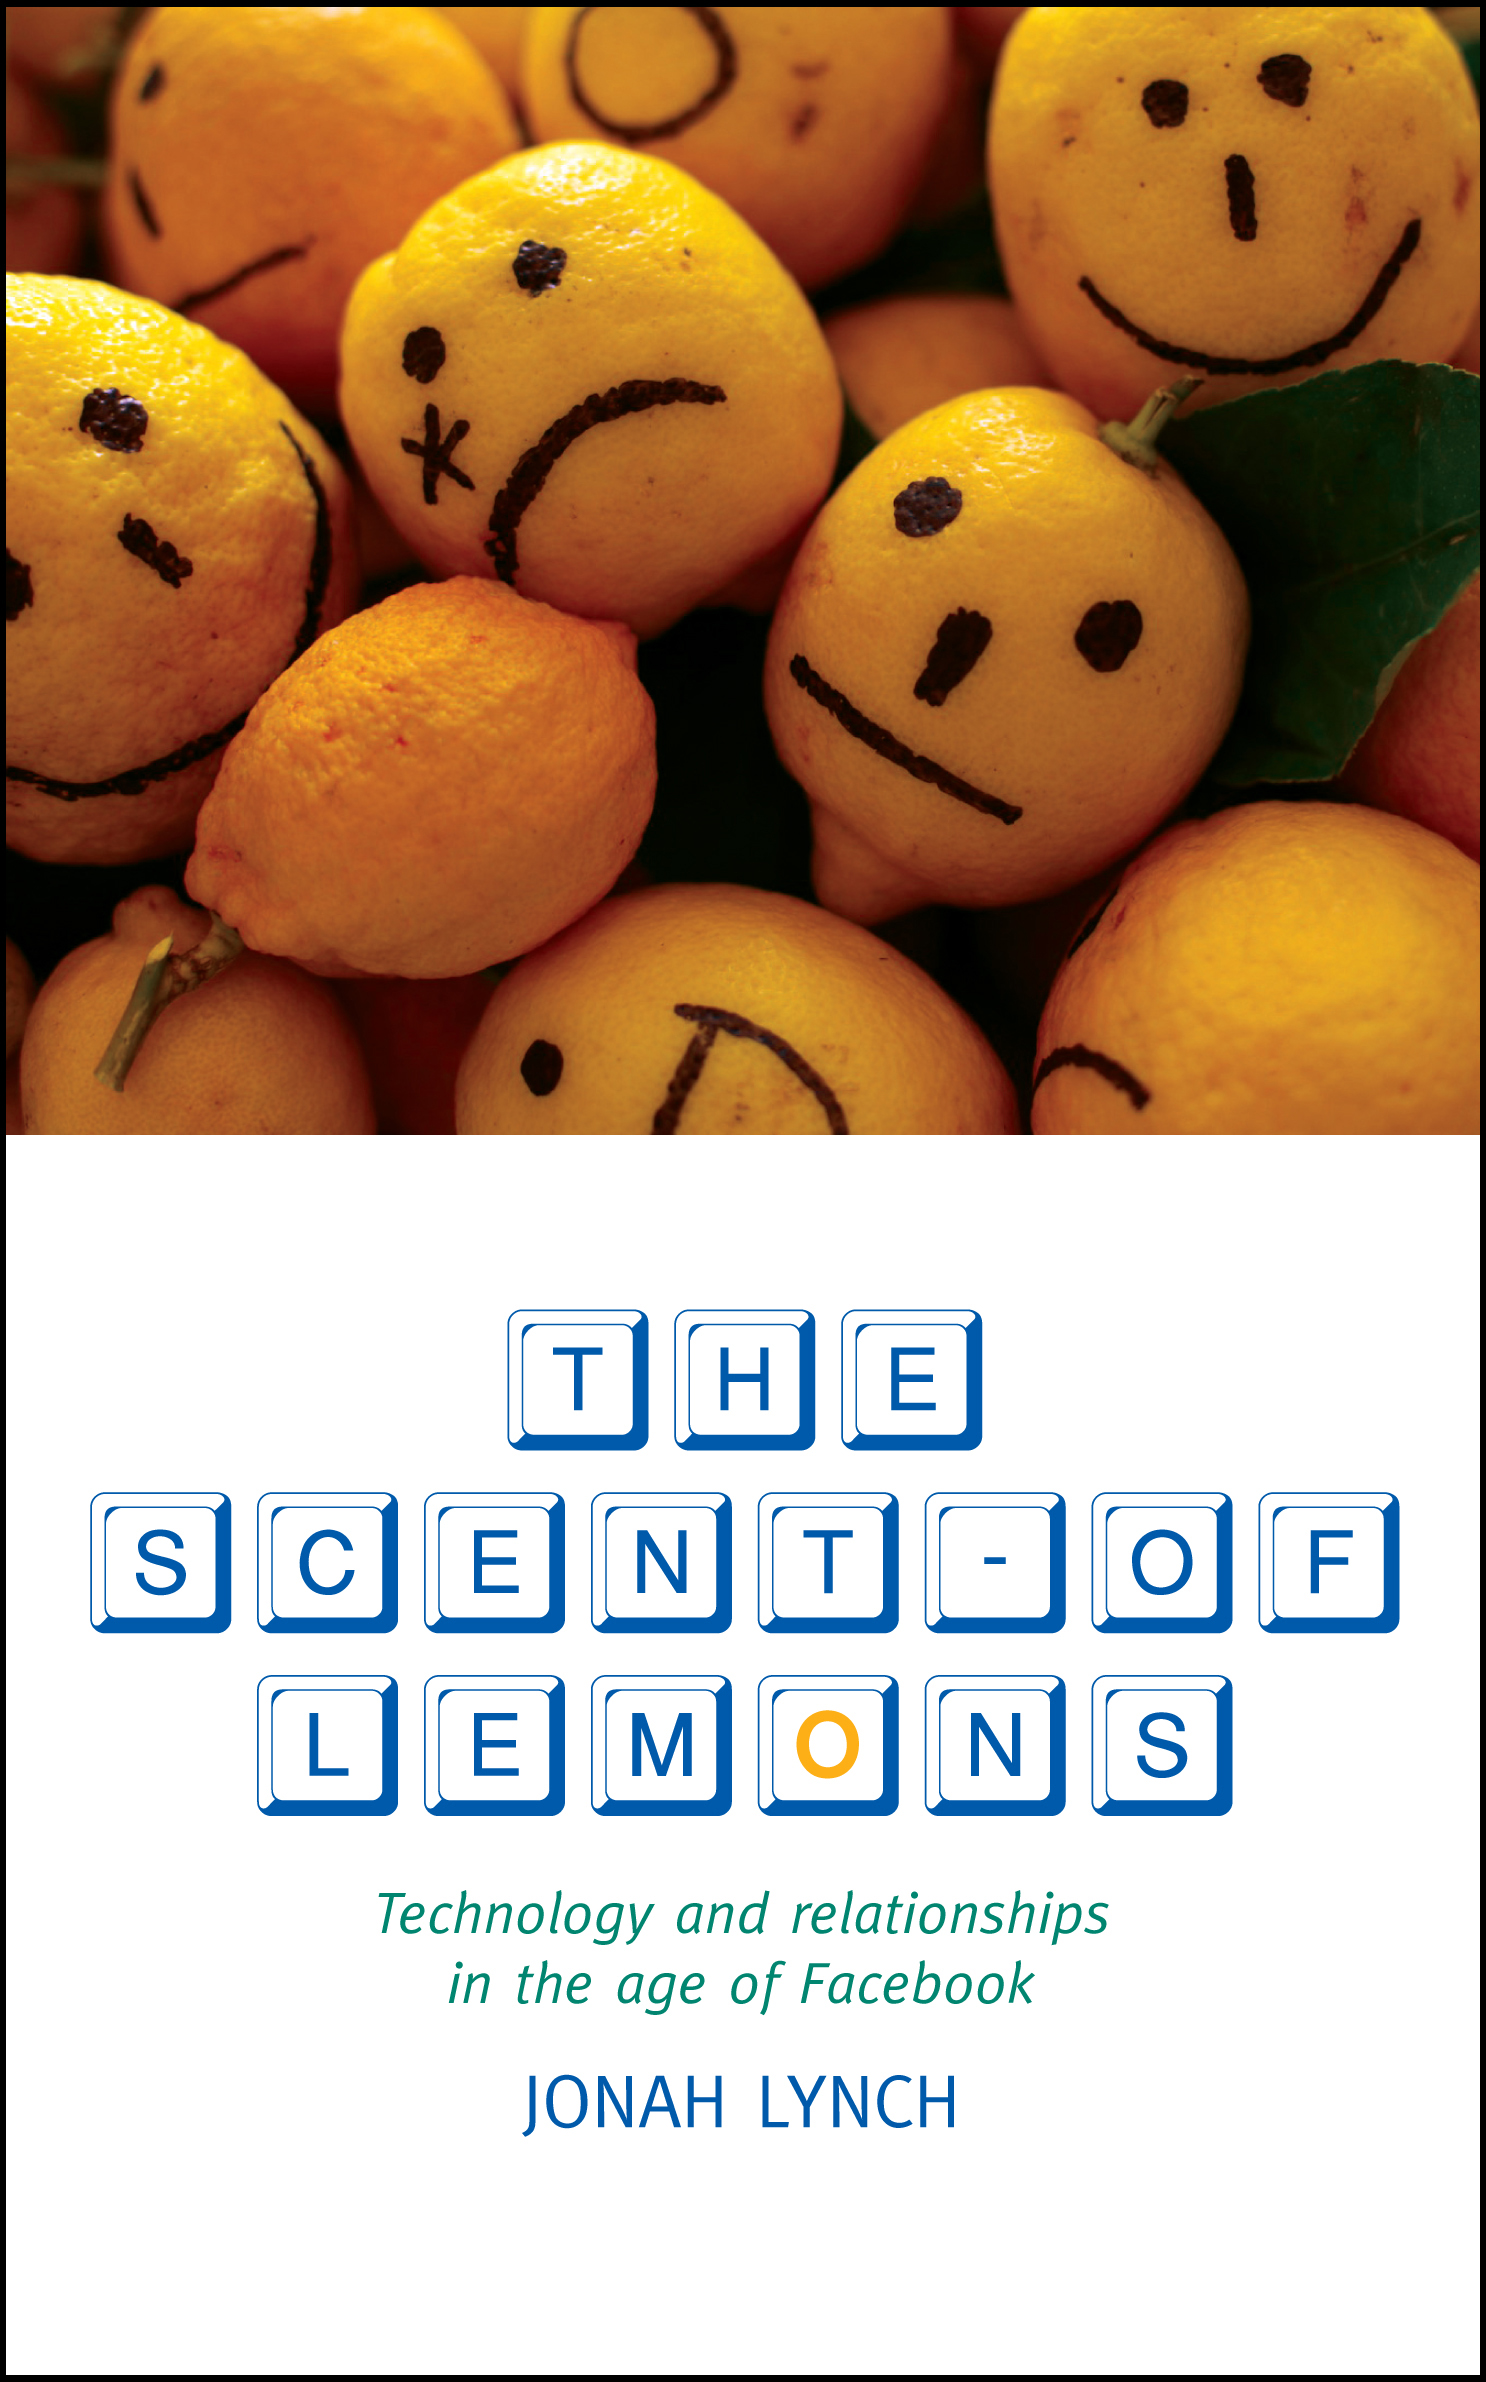 The Scent Of Lemons